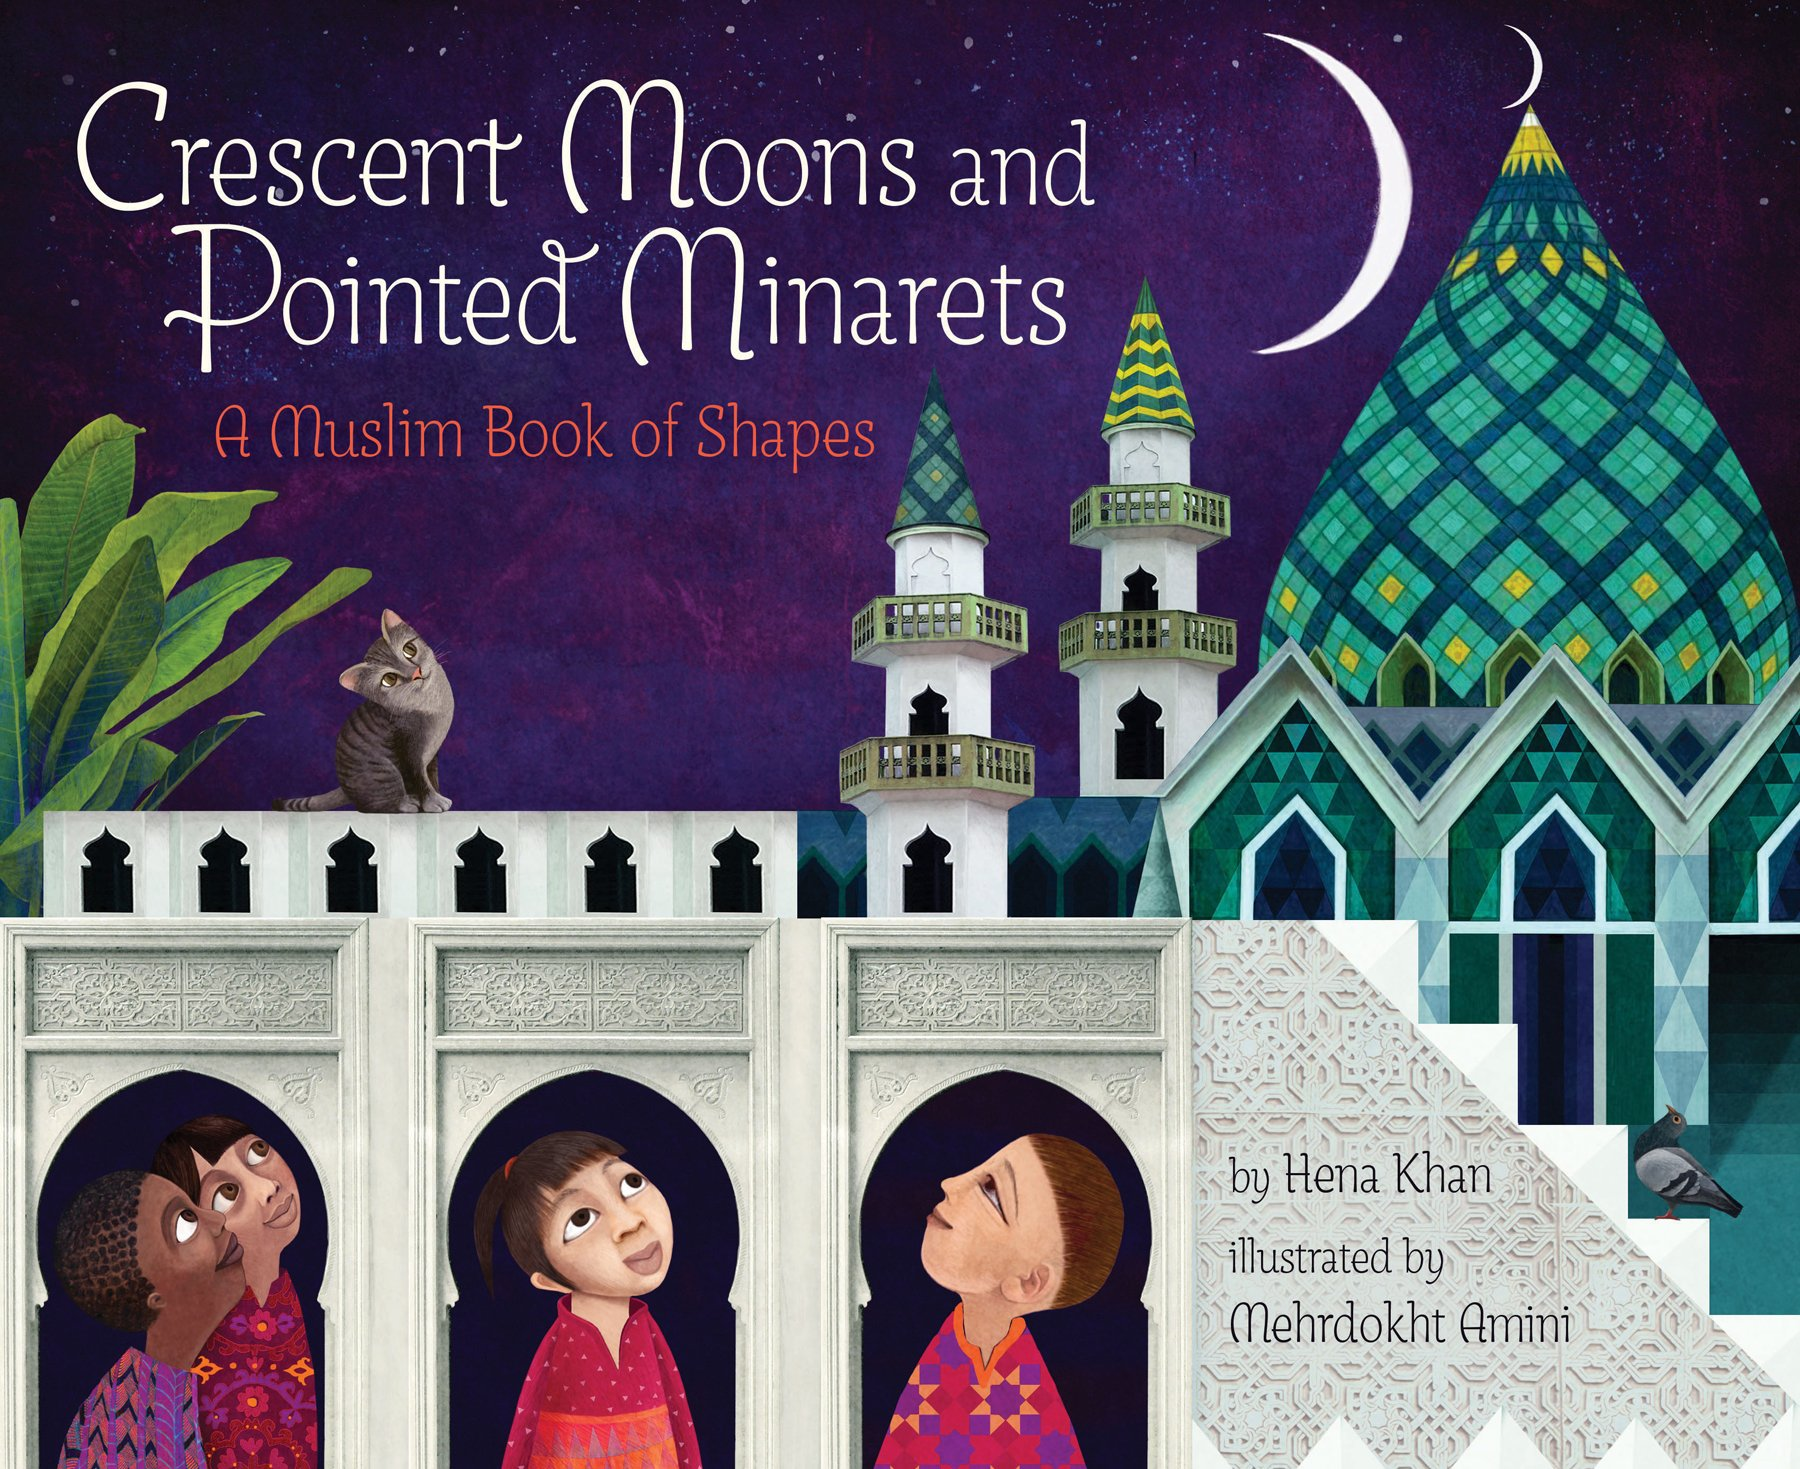 Fantastic children's books about Islam: Crescent Moons and Pointed Minarets by Hena Khan